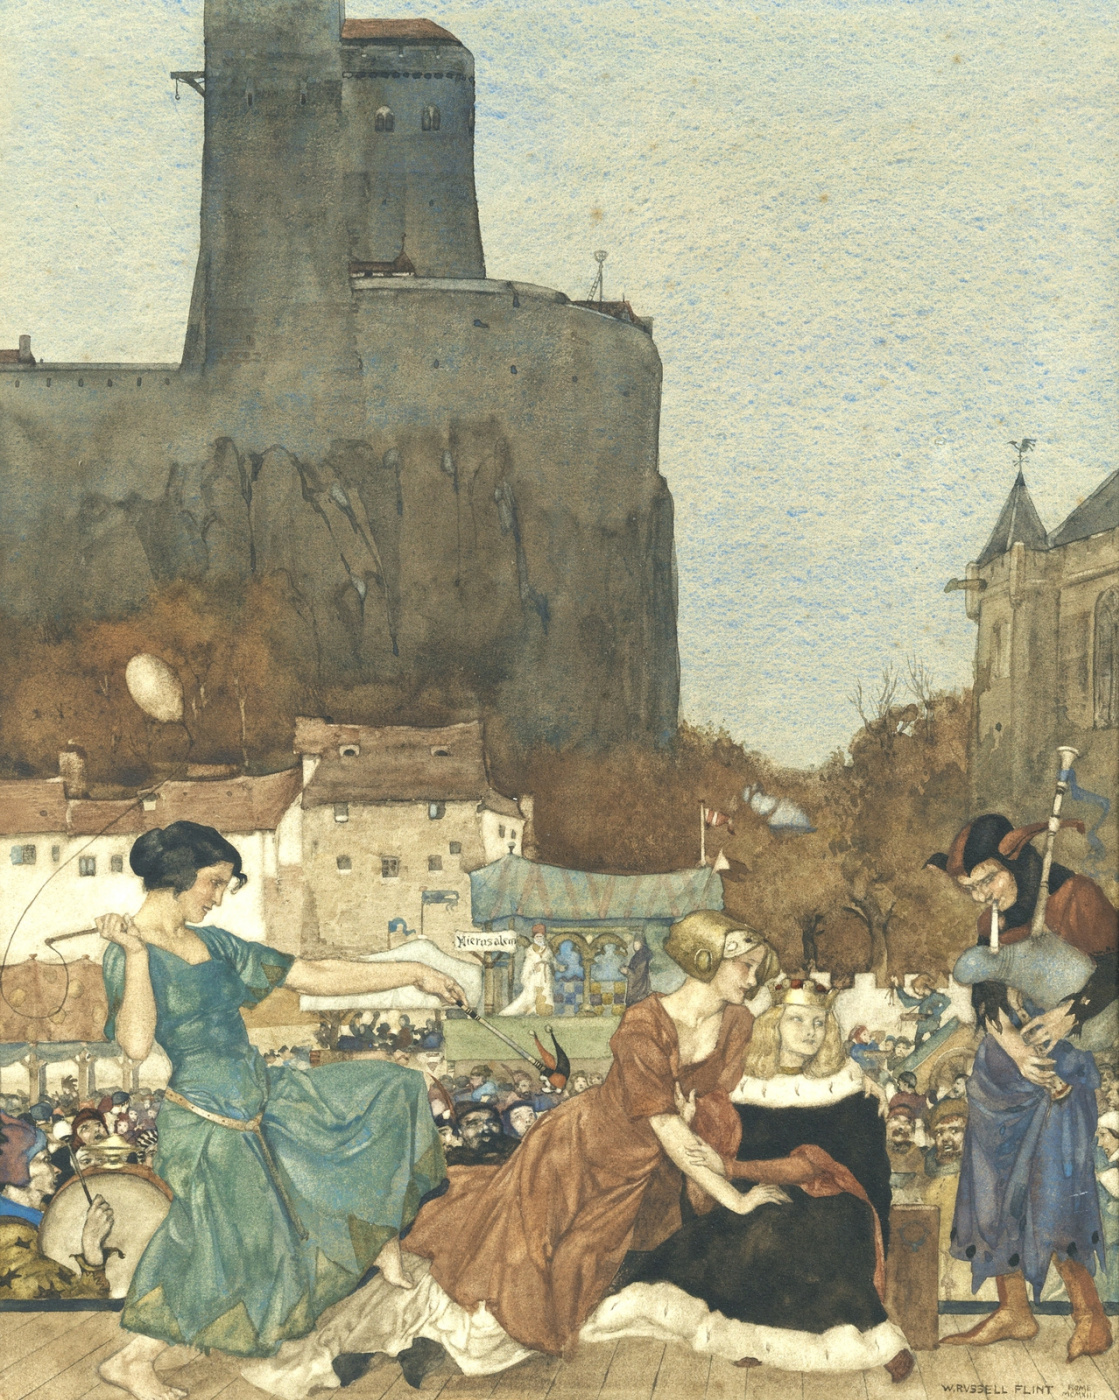 William Russell Flint 1880 - 1969 Scotland. Ront and revel on every side.